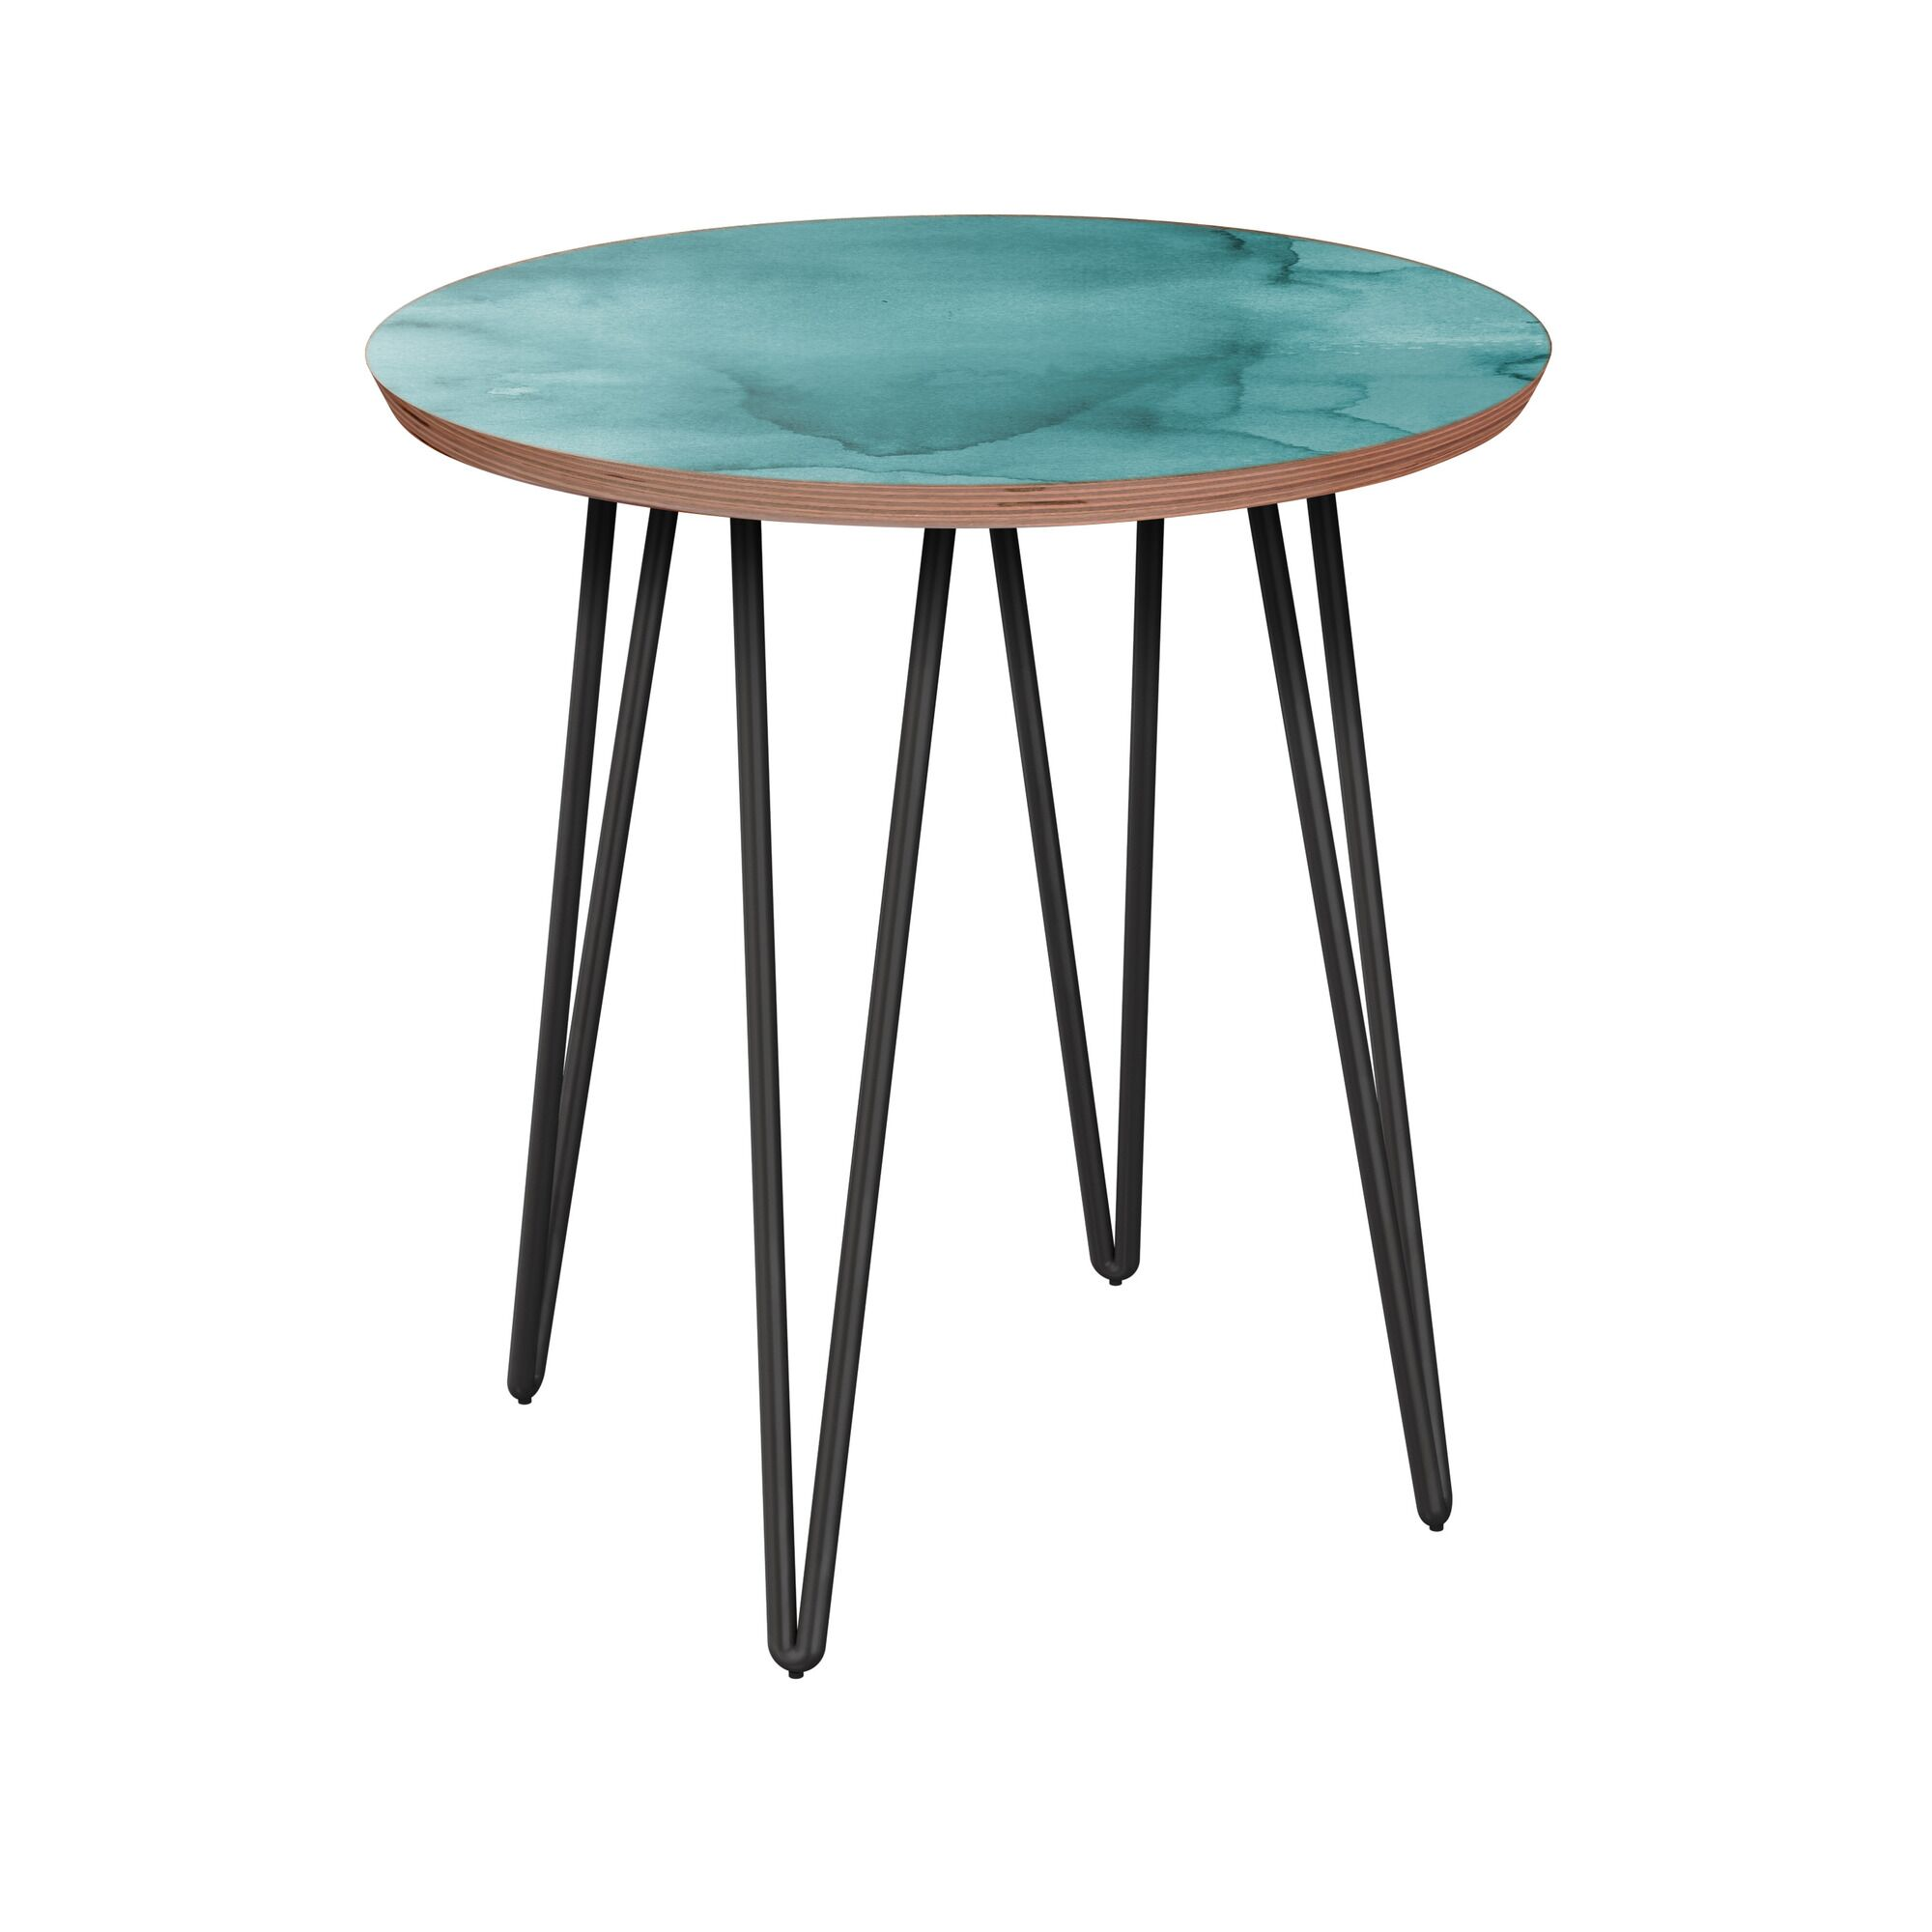 Raskin End Table Table Base Color: Black, Table Top Boarder Color: Walnut, Table Top Color: Turquoise